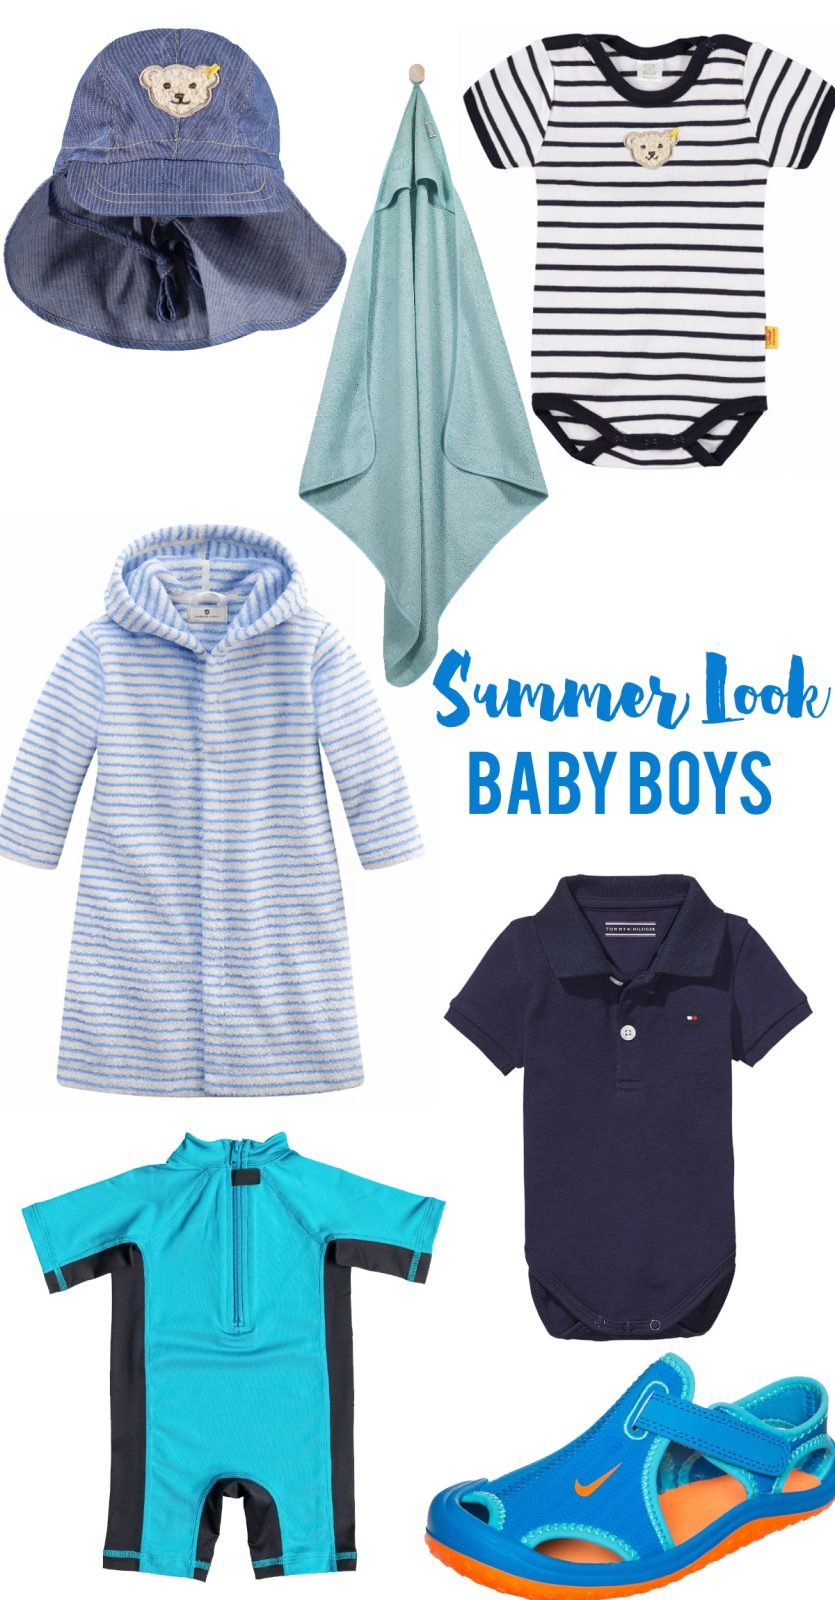 Otto Sommer Outfits Summer Look Baby Boys